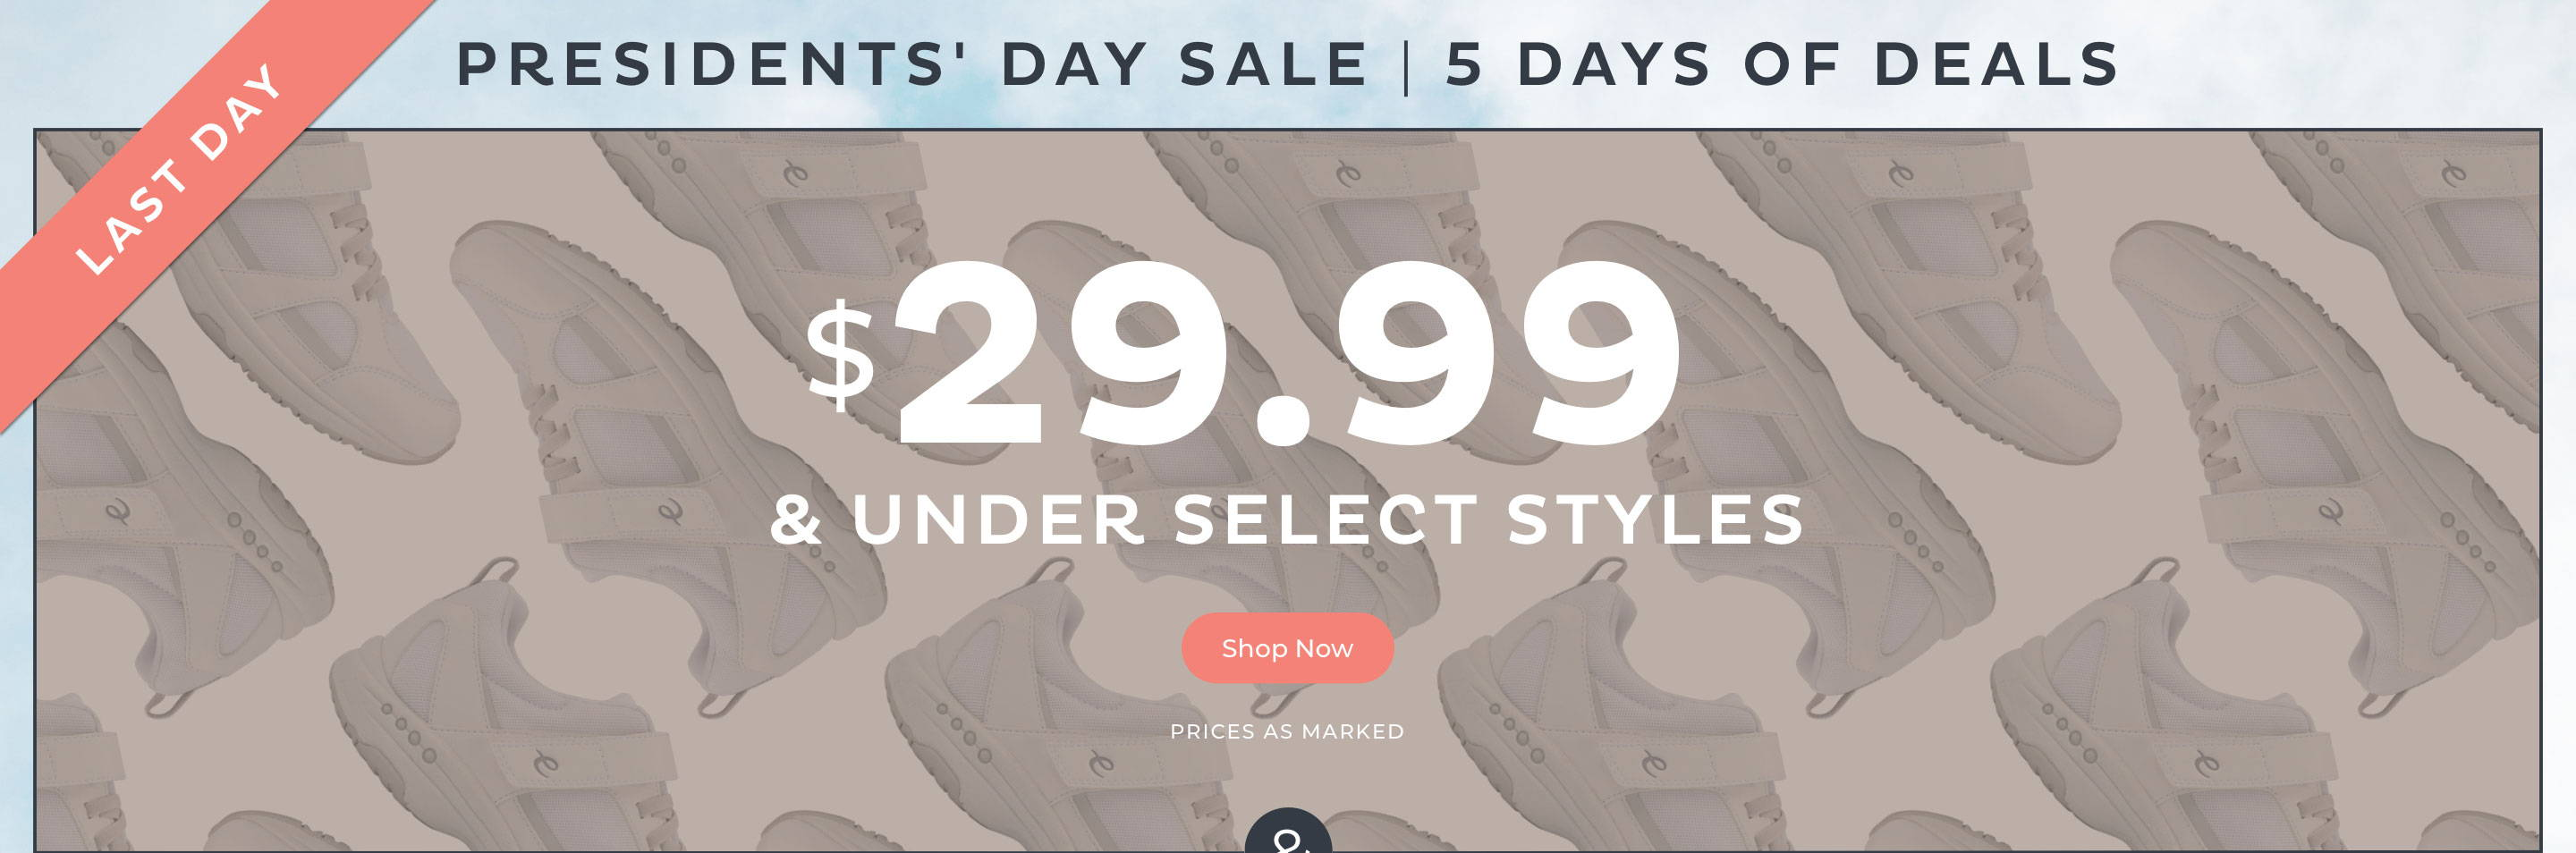 $29.99 & Under Select Styles